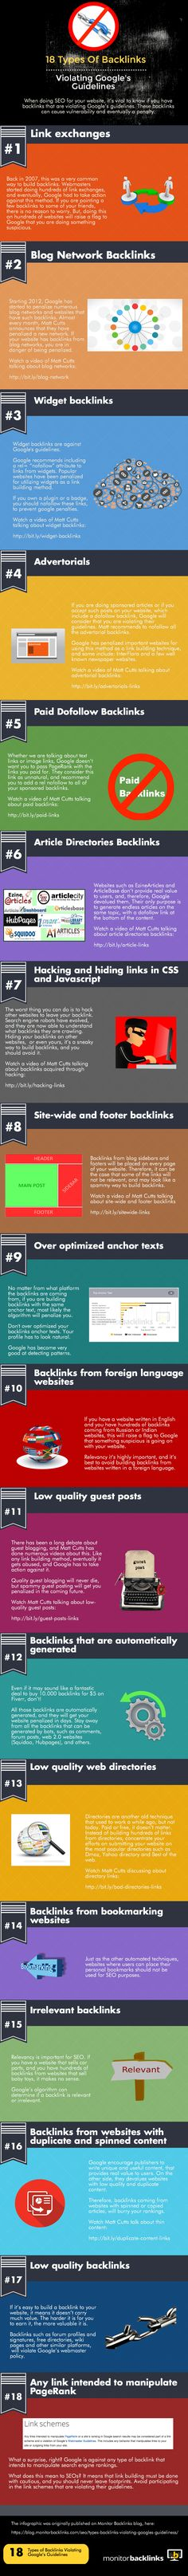 18 types of Backlinks to Avoid http://sgseo.co